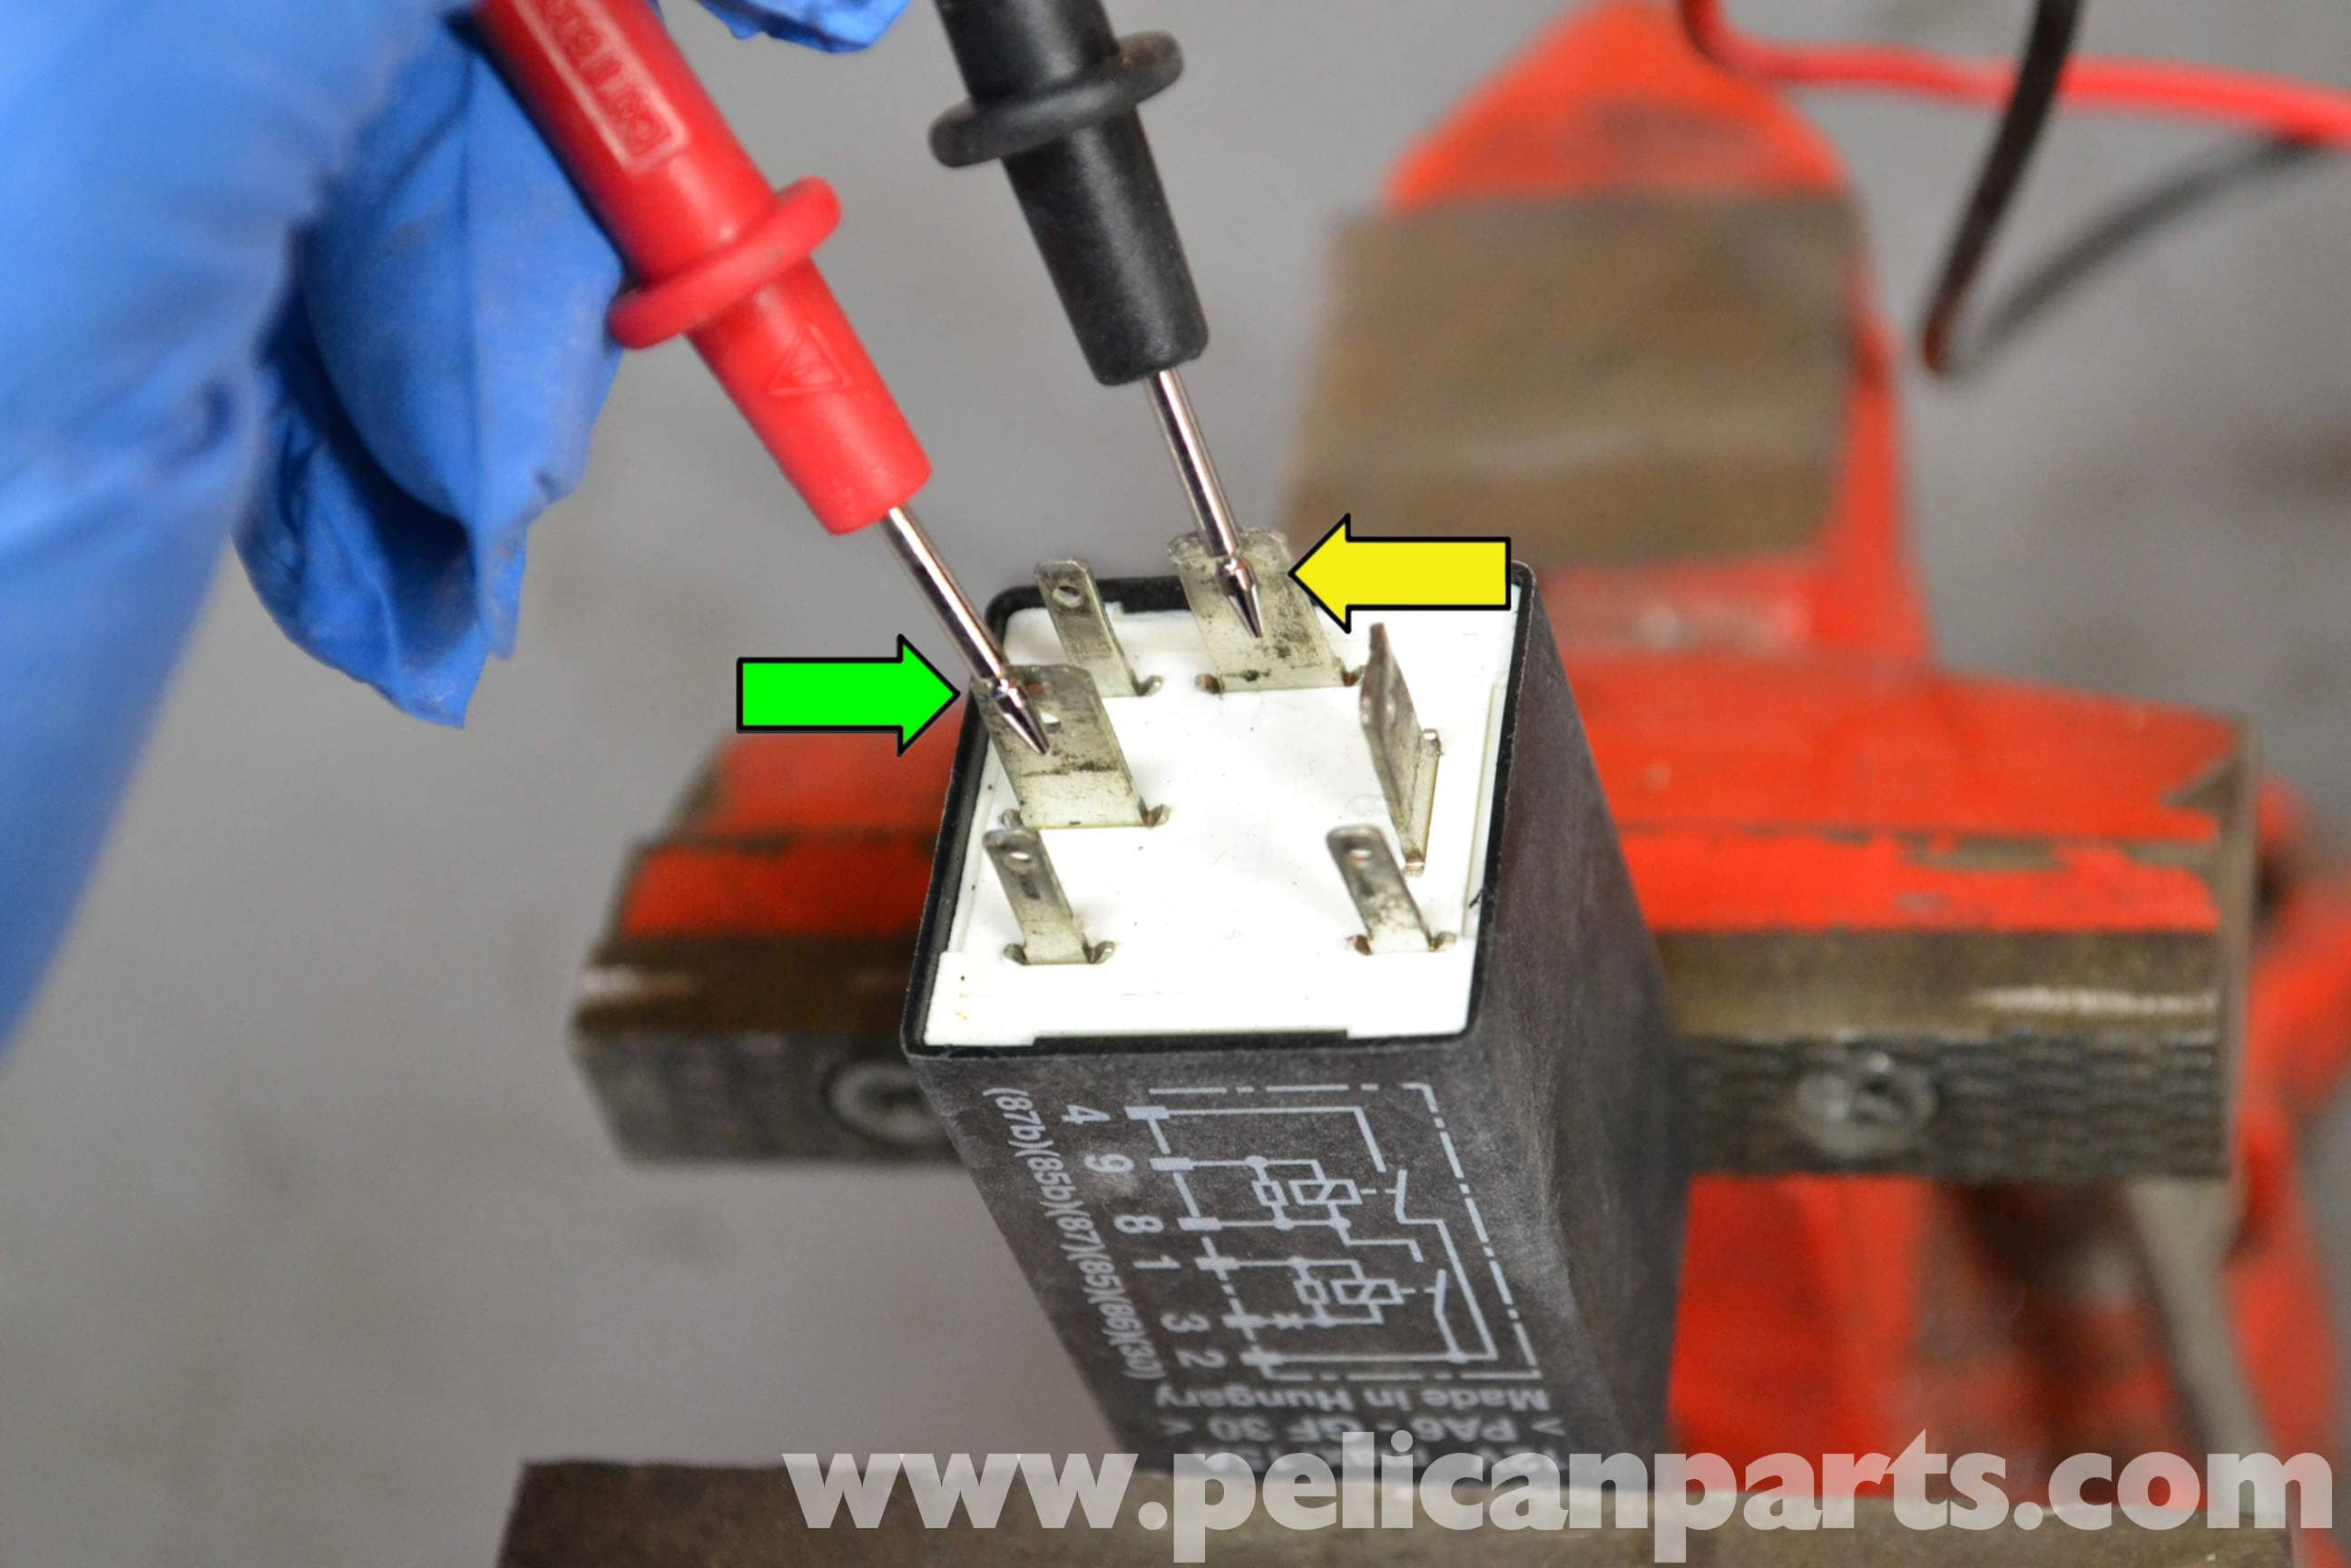 Pelican Technical Article Porsche 993 Dme Relay Trouble Shooting 964 Fuse Box Diagram Large Image